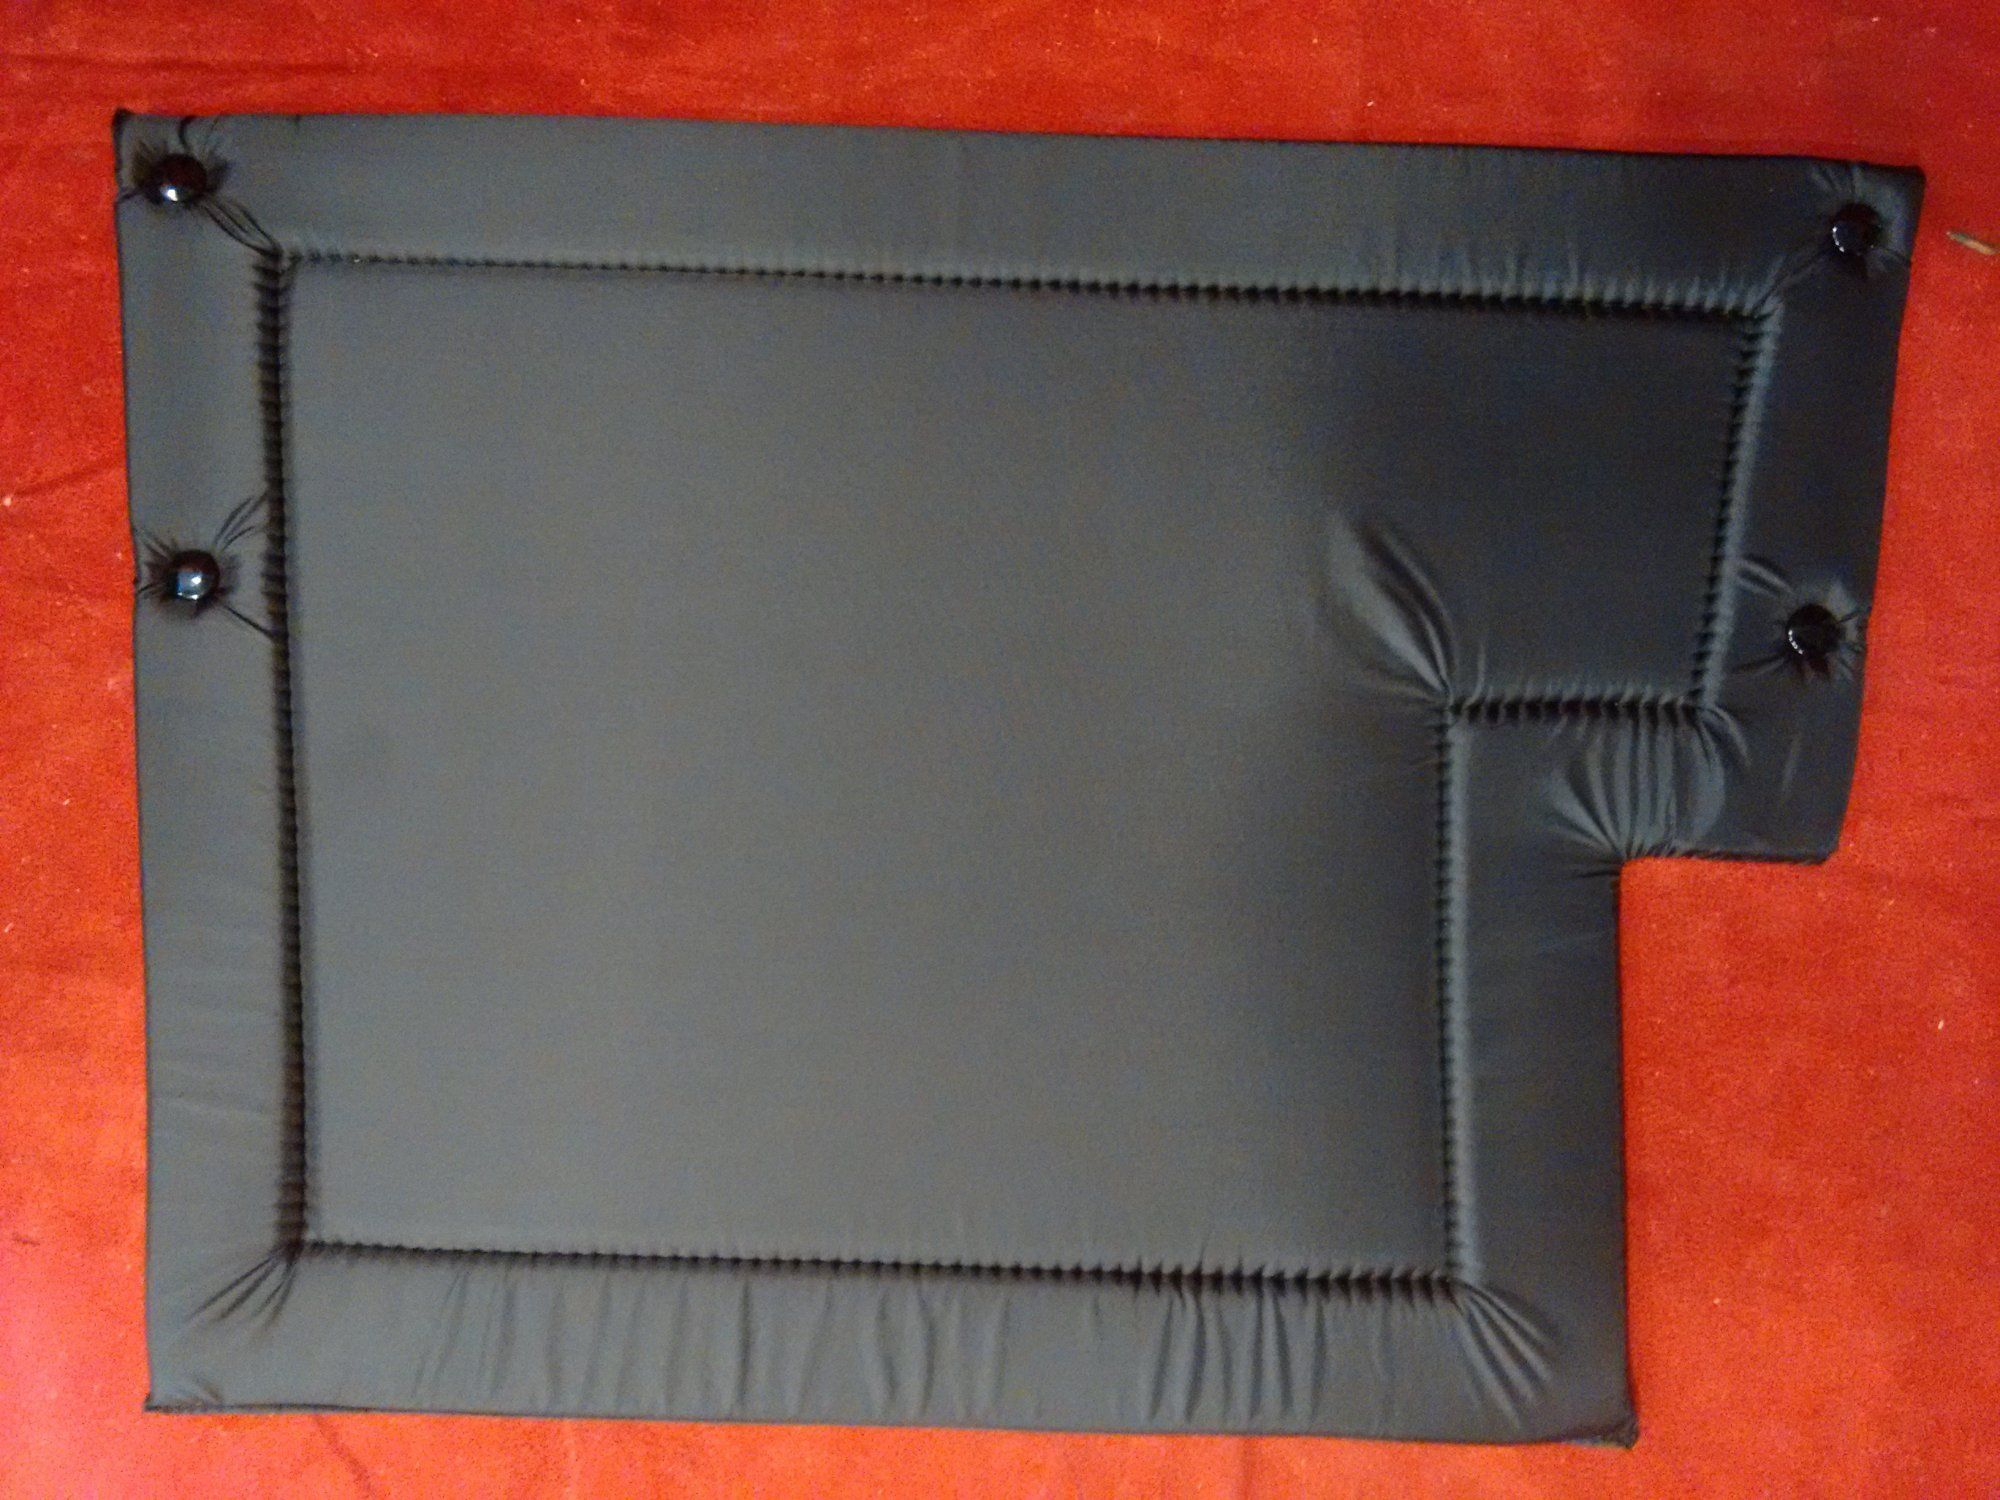 NEW Black Shaped Accordion Back Pad Width (33cm / 13in) Length (29cm / 11.5in)